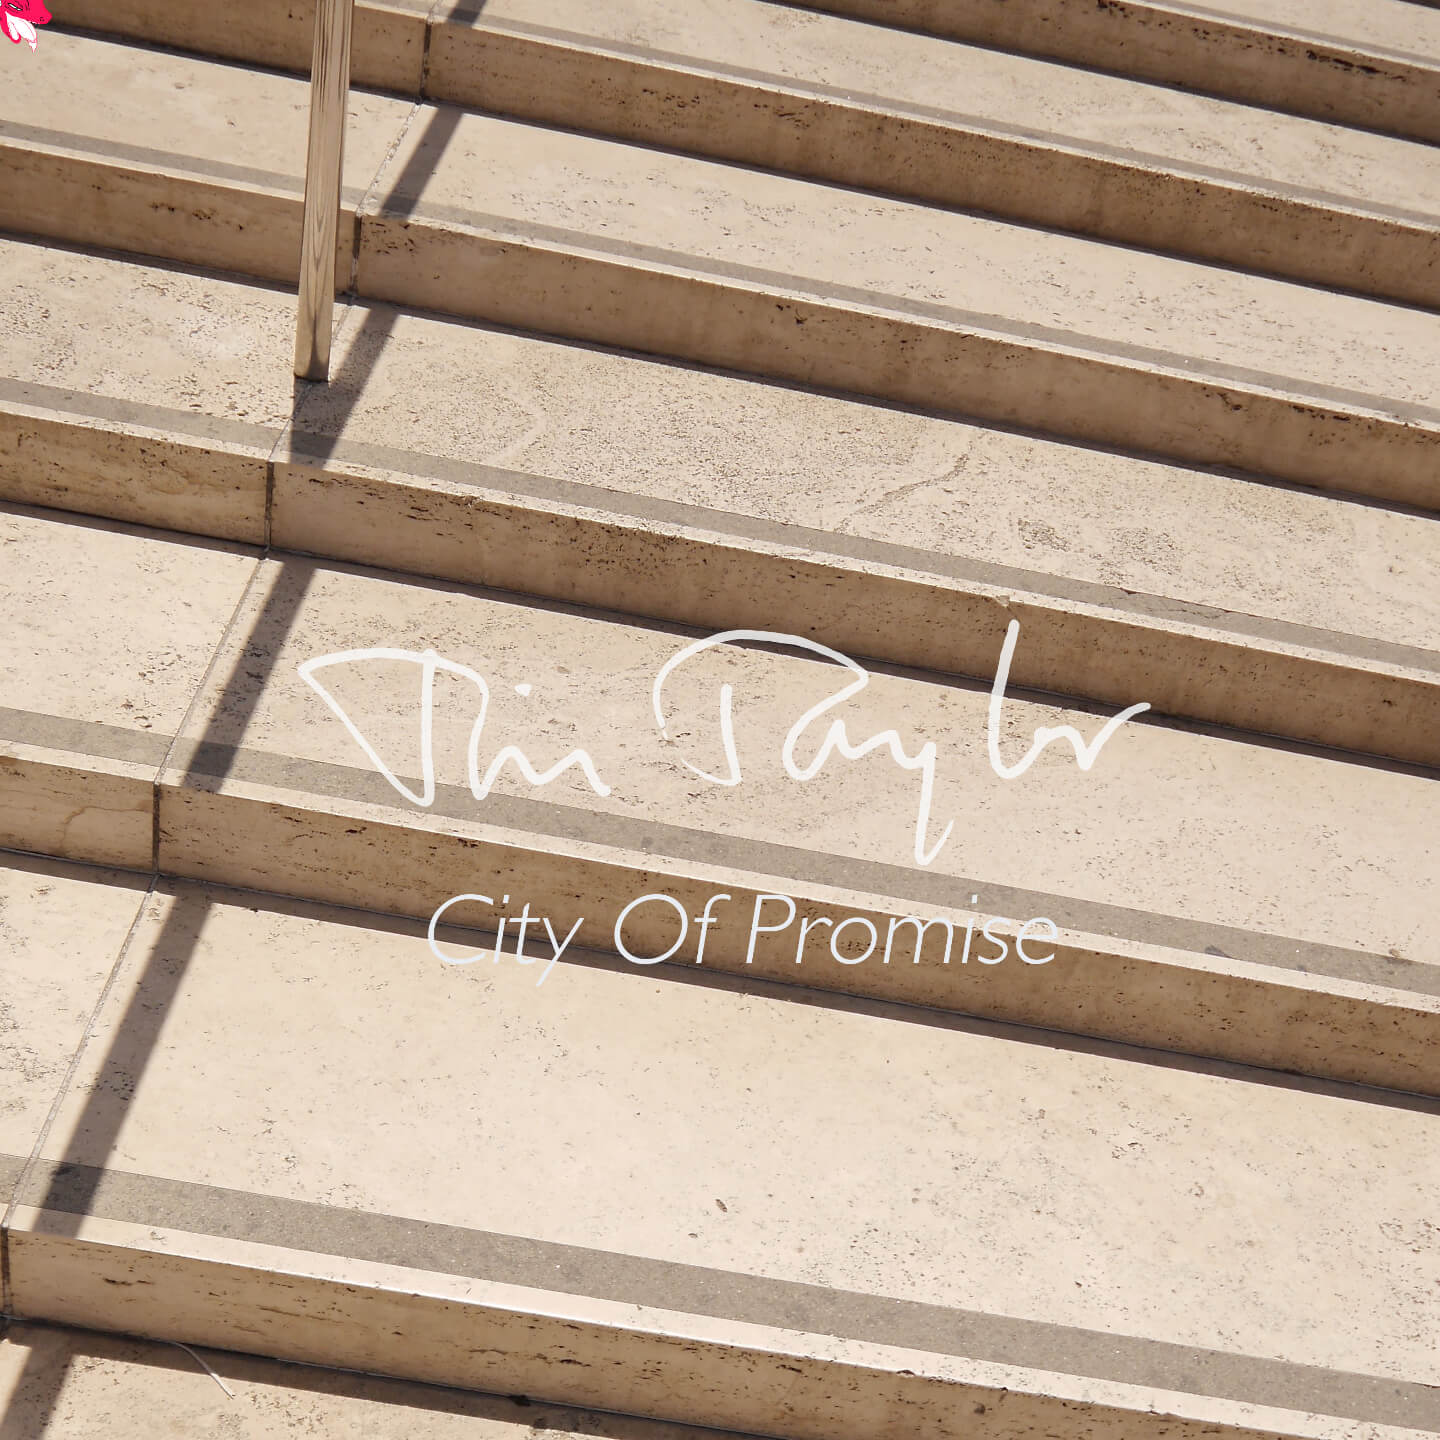 TRIS_TAYLOR_City_Of_Promise_PinkLizardMusic_medium.jpg